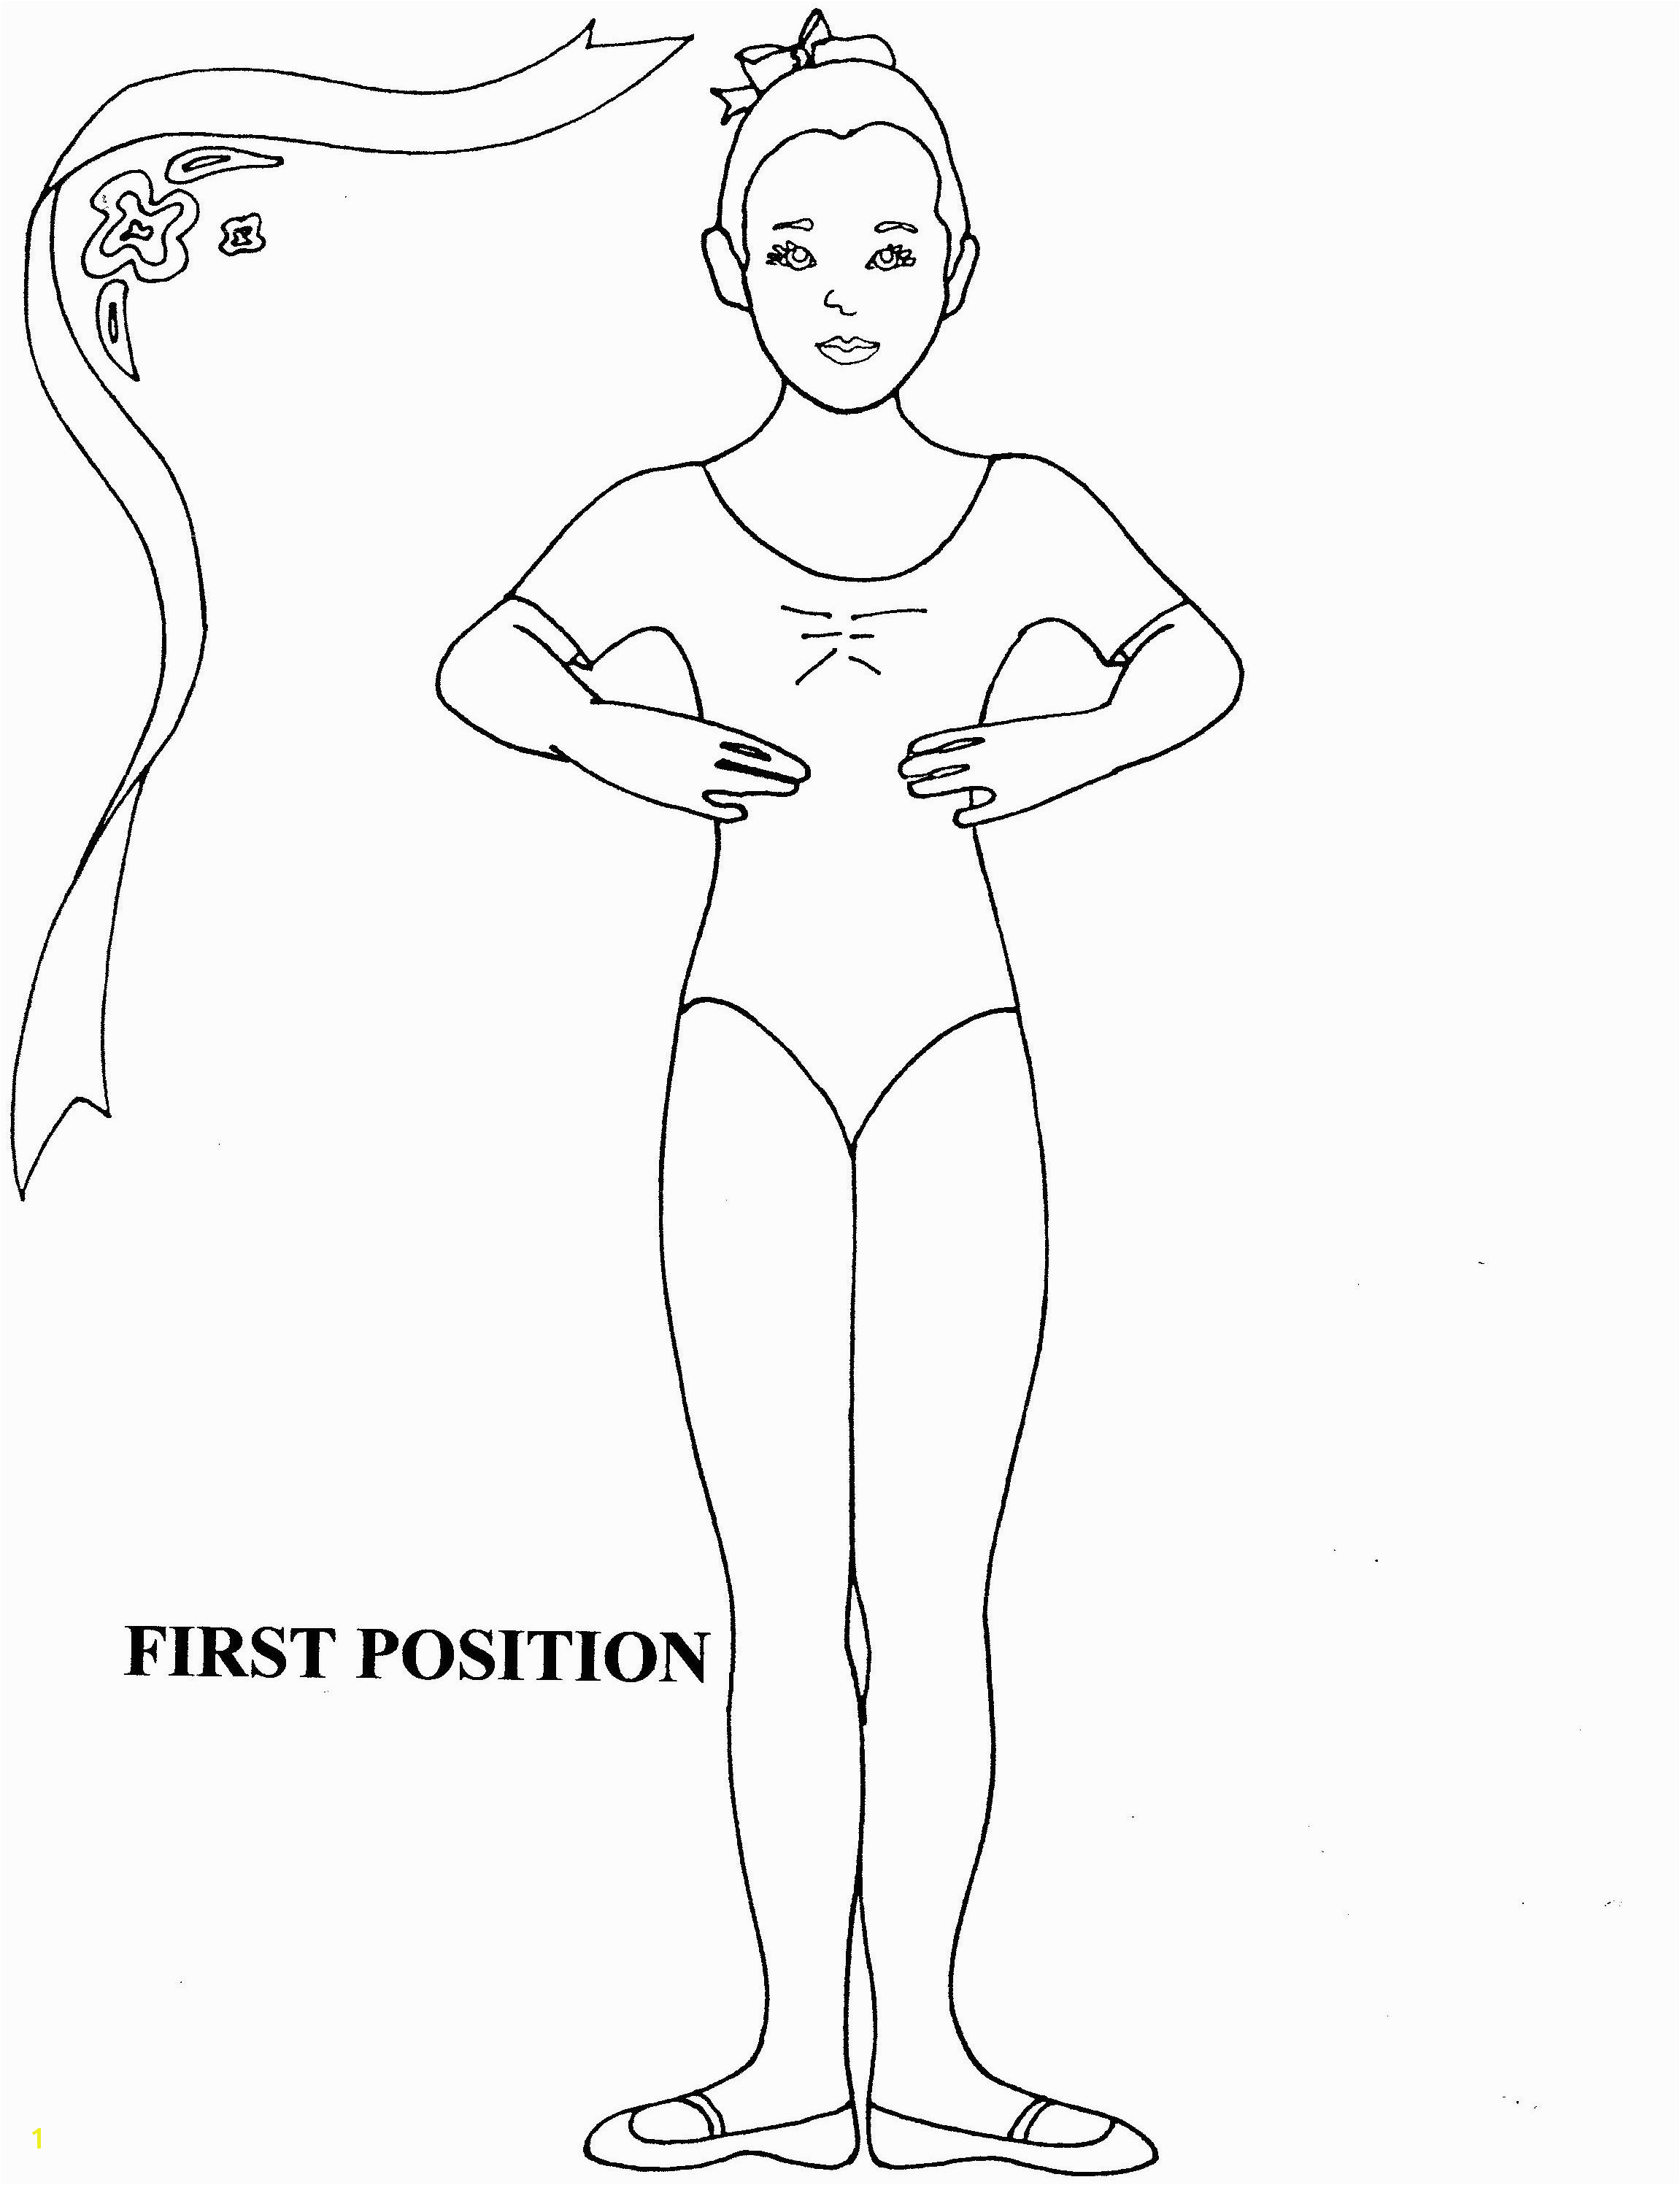 Ballerina Coloring Pages Pdf Ballerina Coloring Pages Pdf Coloring Pages Coloring Pages